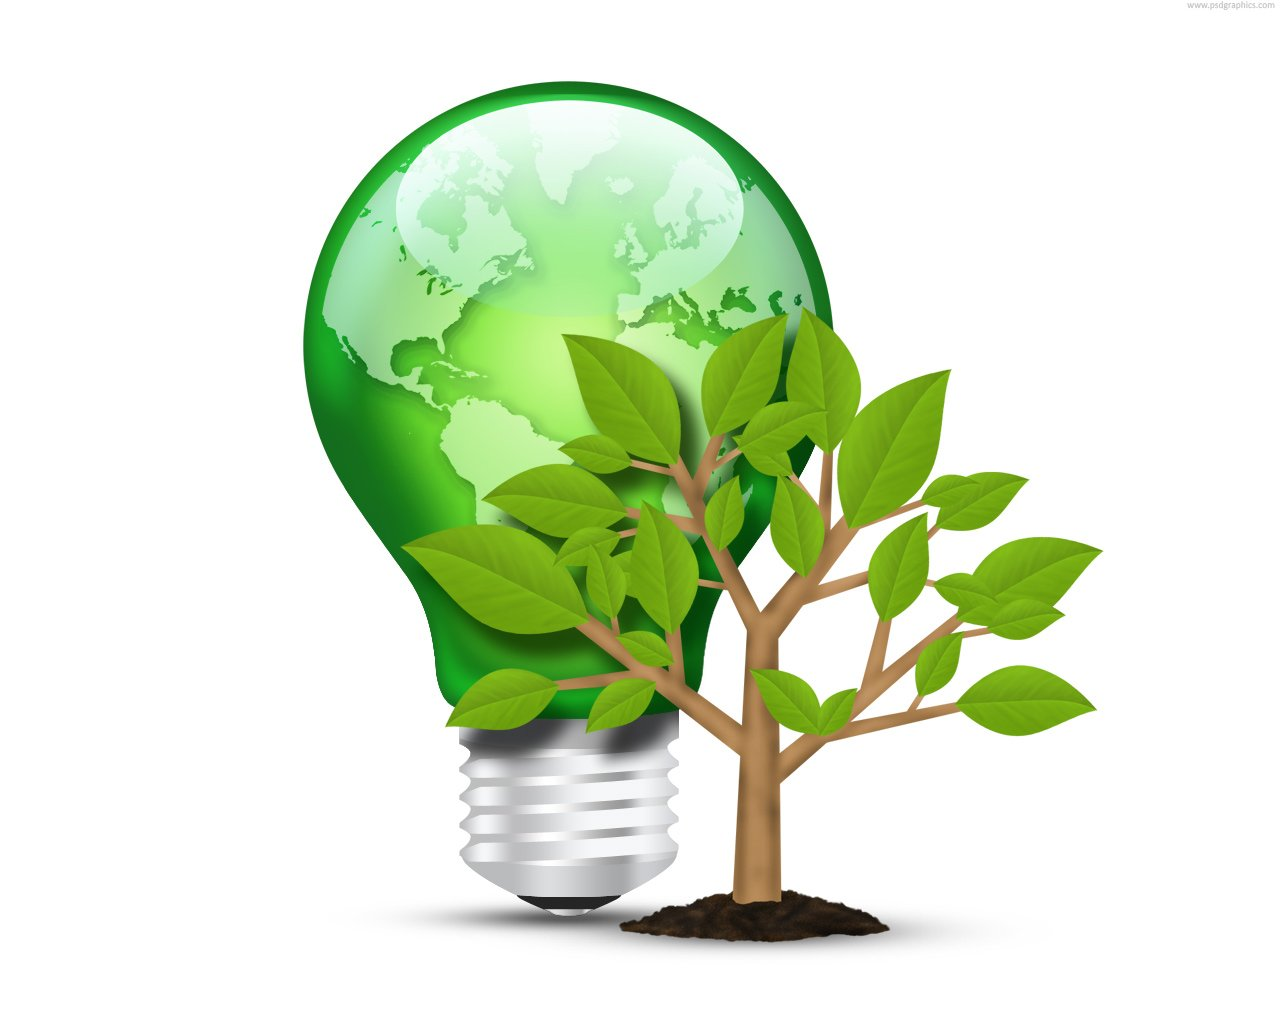 Good How Many People Does It Take To Change A Light Bulb To Make A Difference On  Earth Day?